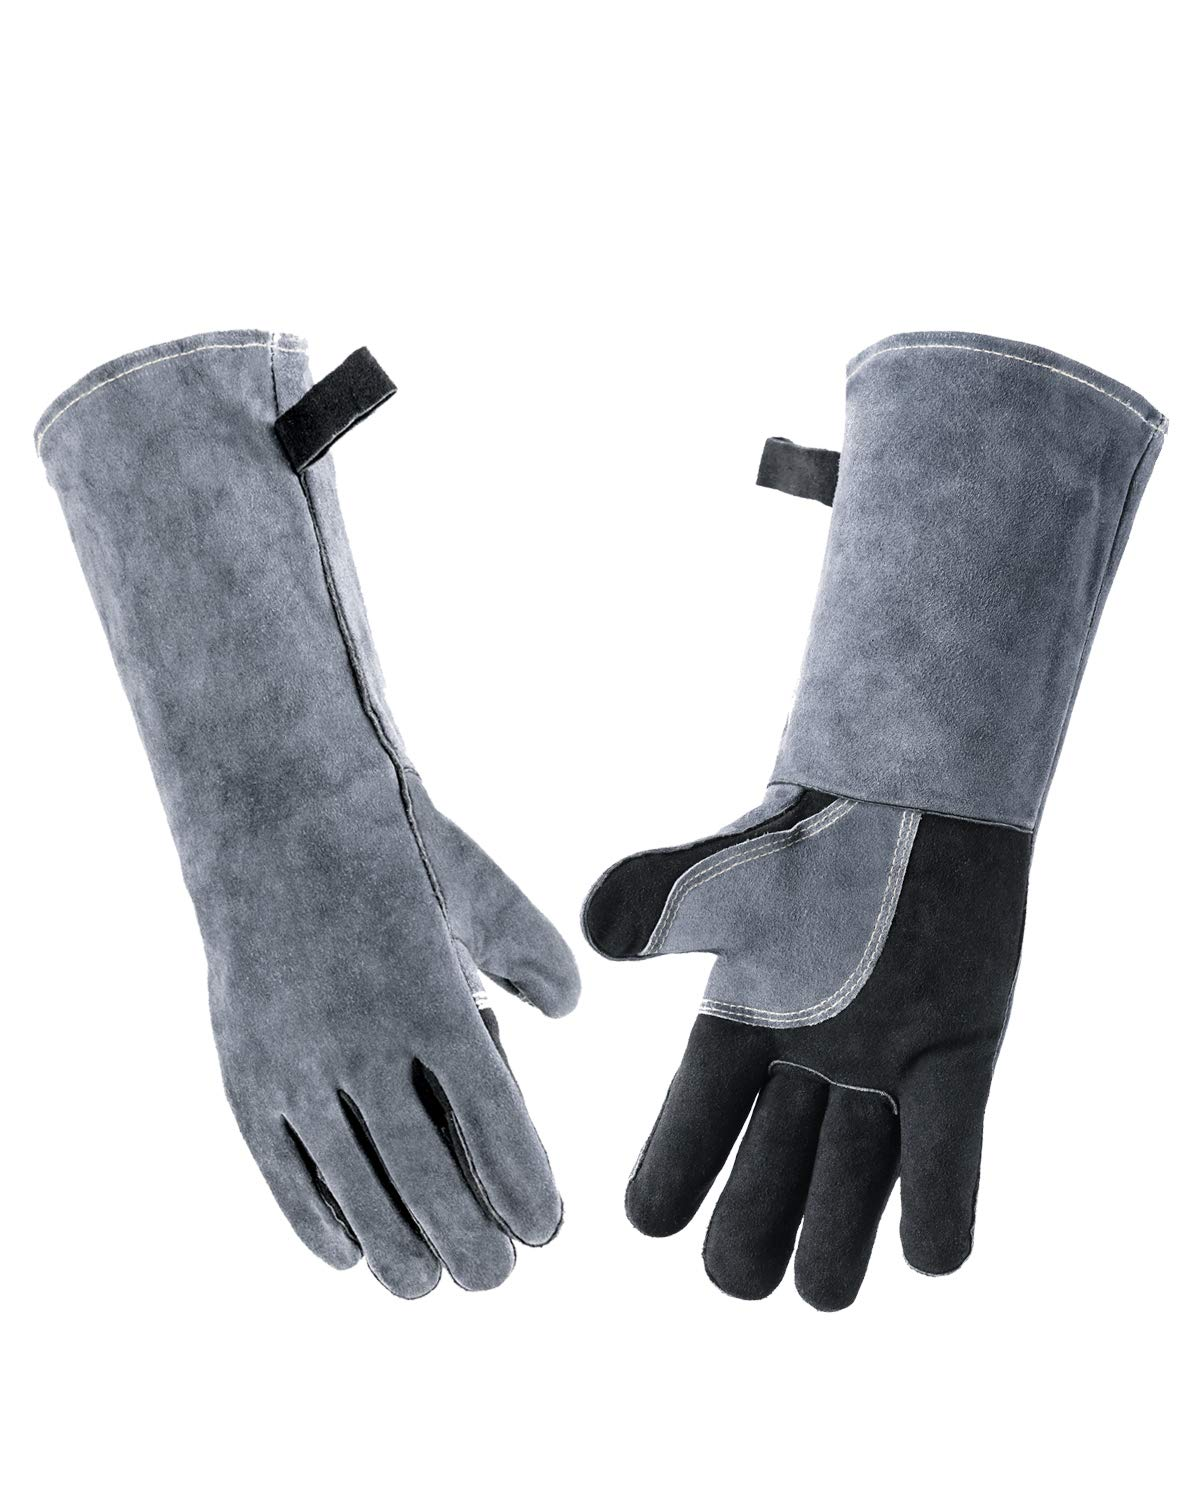 Wanyi 16 Inches 932℉/500℃ Leather Welding Gloves for Extreme Heat Resistance by wanyi